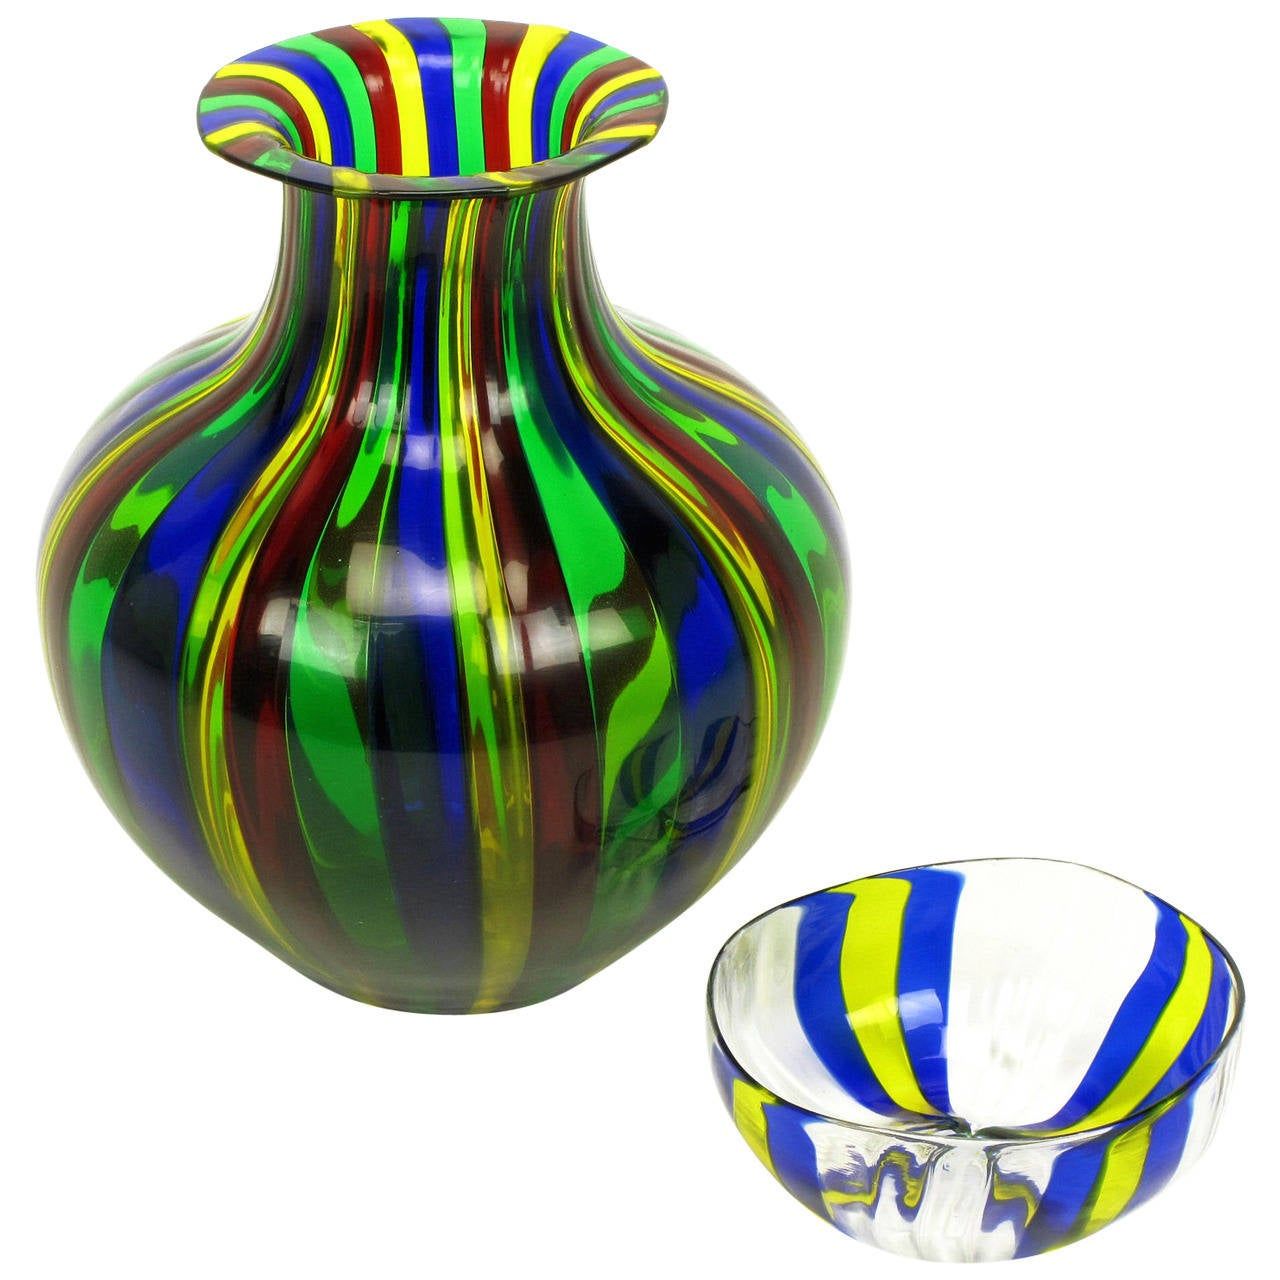 italian handblown art glass vase with bowl by oggetti for sale at 1stdibs. Black Bedroom Furniture Sets. Home Design Ideas